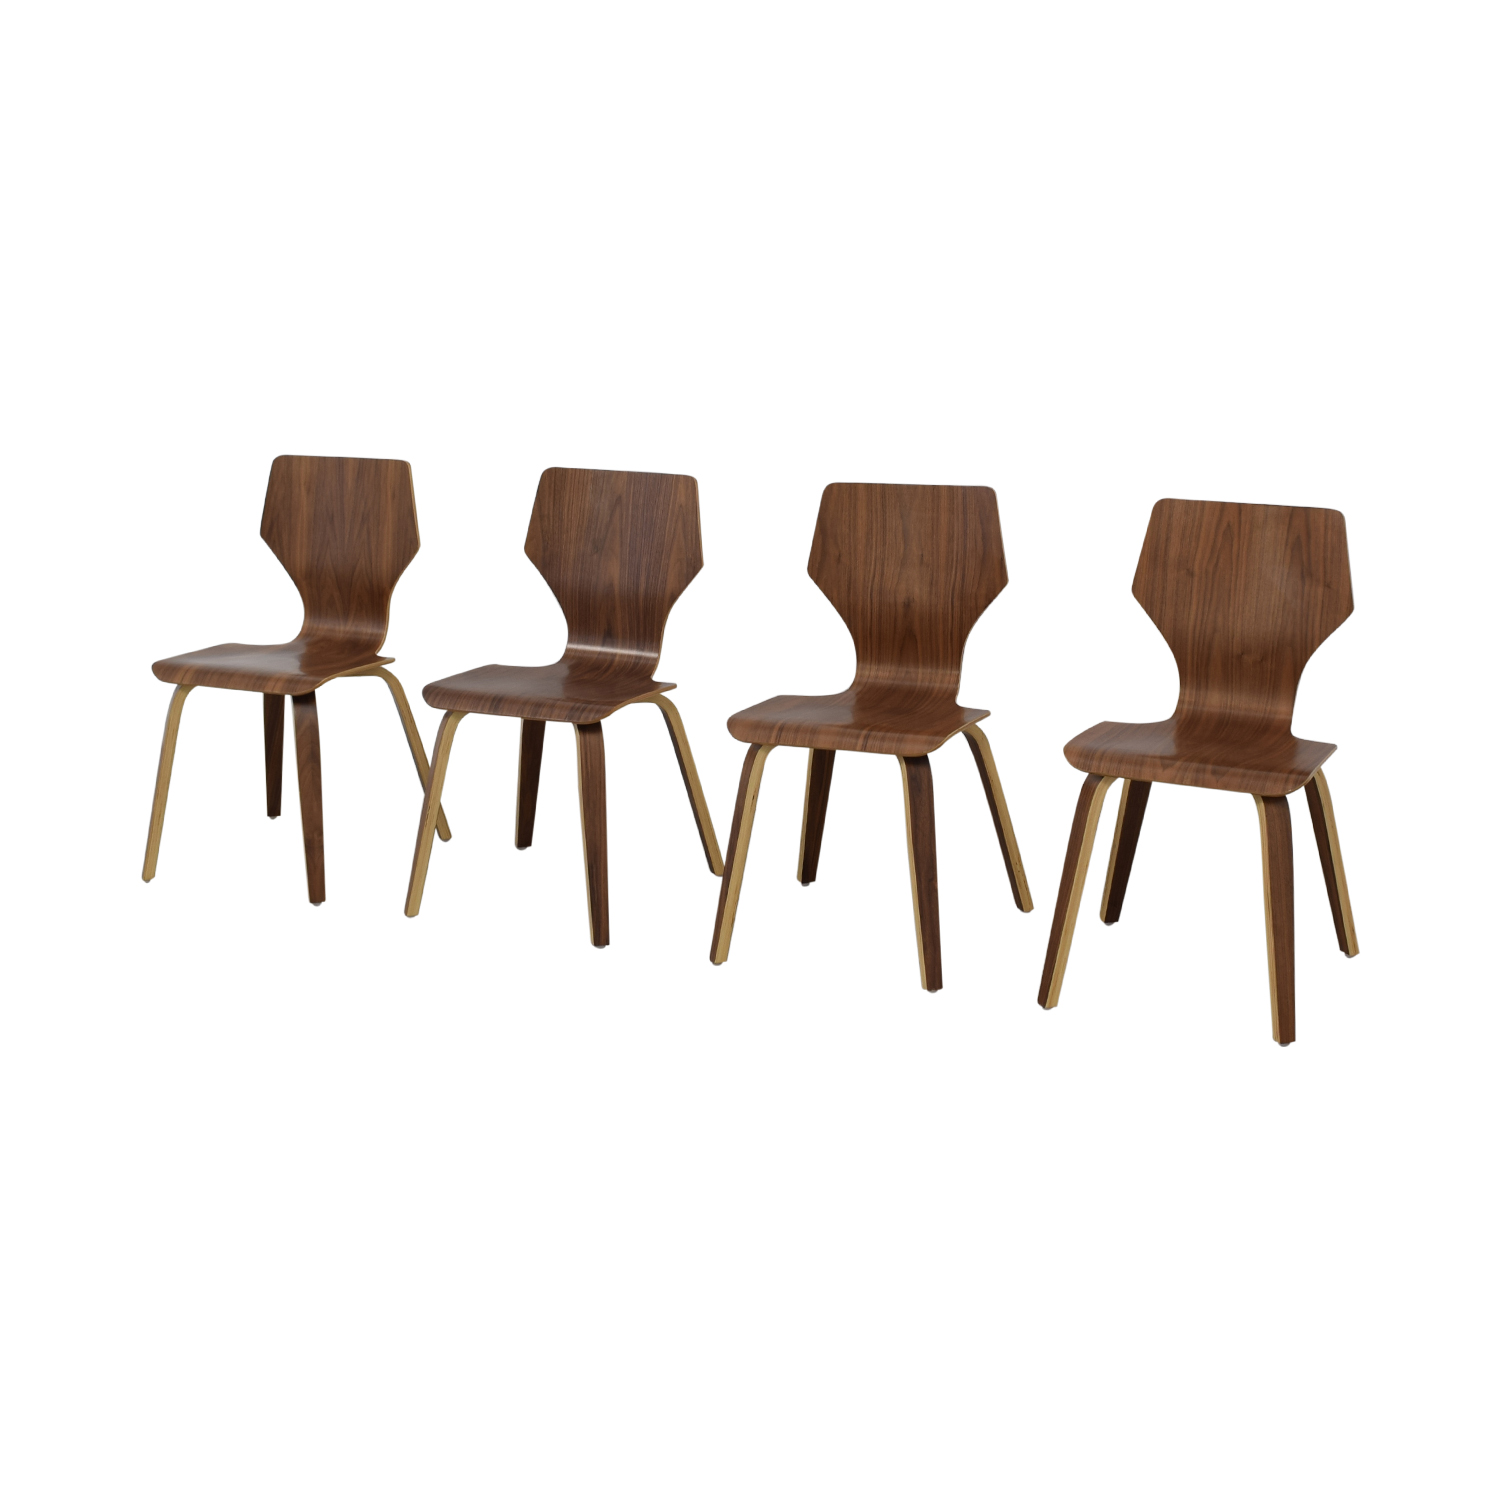 Wood Dining Room Chairs on sale